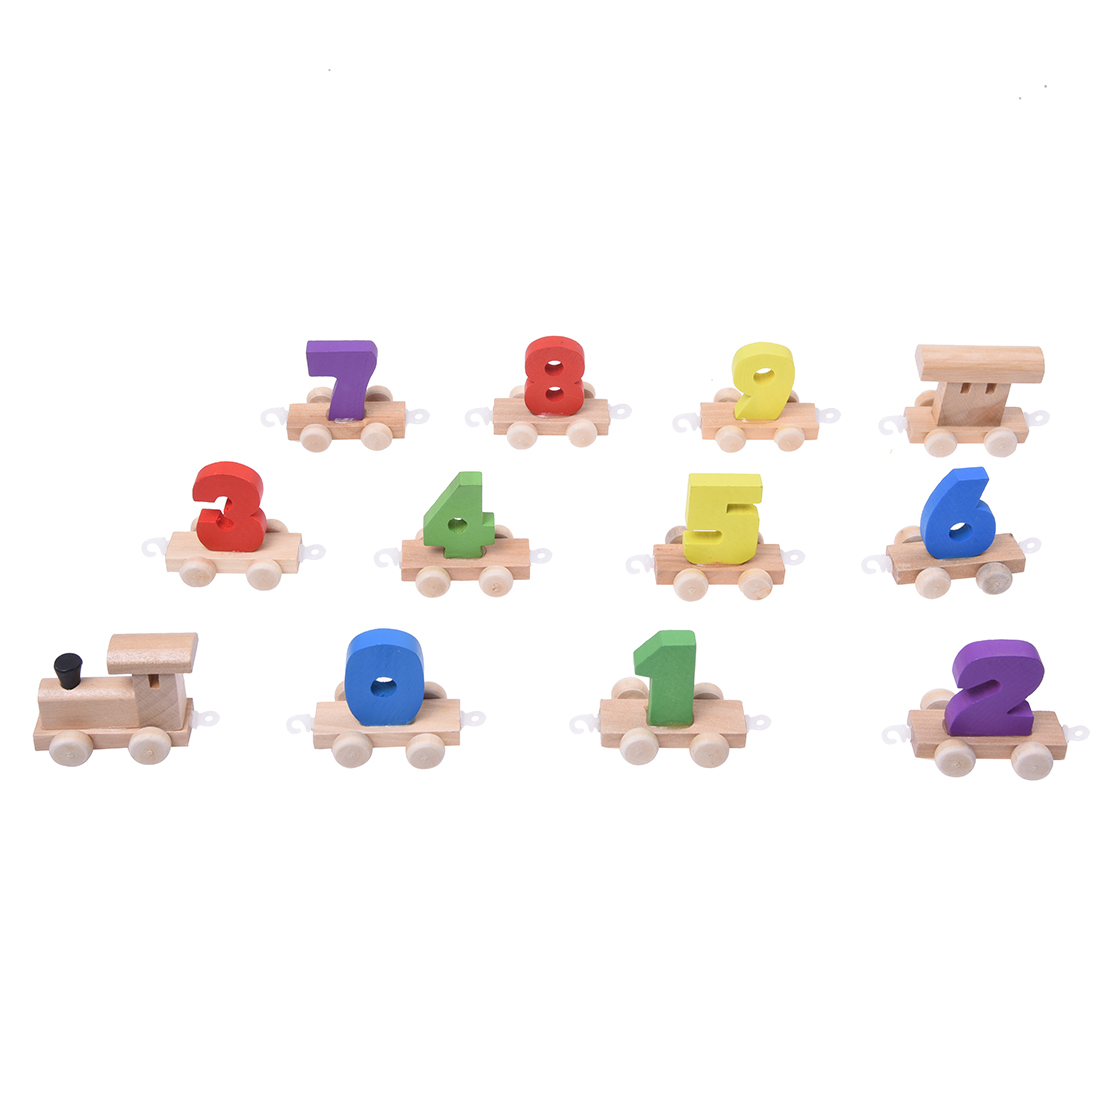 2018 New Wooden Toys Digital Figures Number Railway Train Childrens Educational Toys